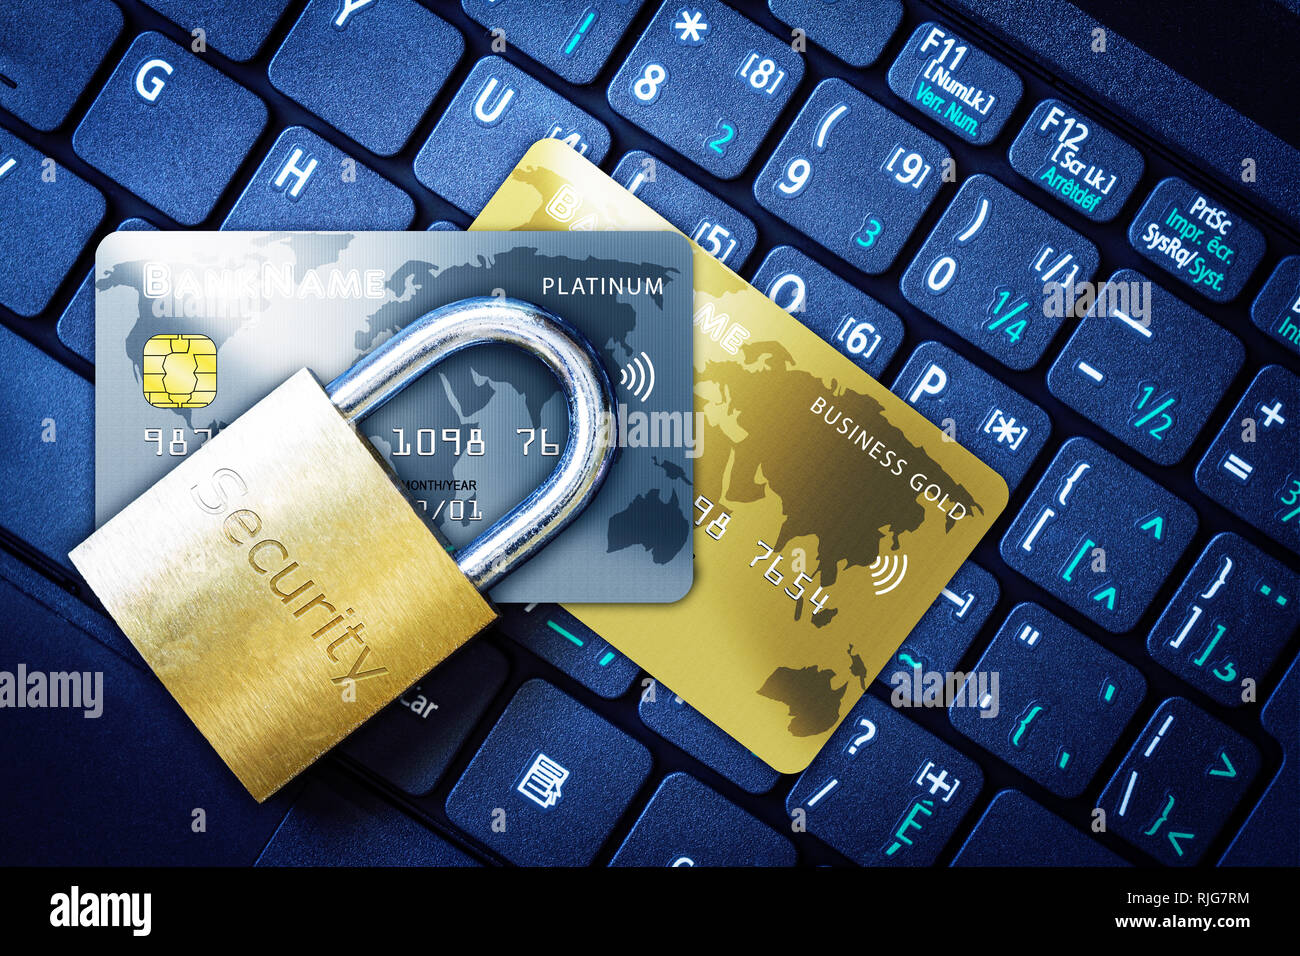 Golden padlock on top of fictitious credit cards on computer keyboard. Concept of Internet security, data privacy, cybercrime prevention for online sh - Stock Image